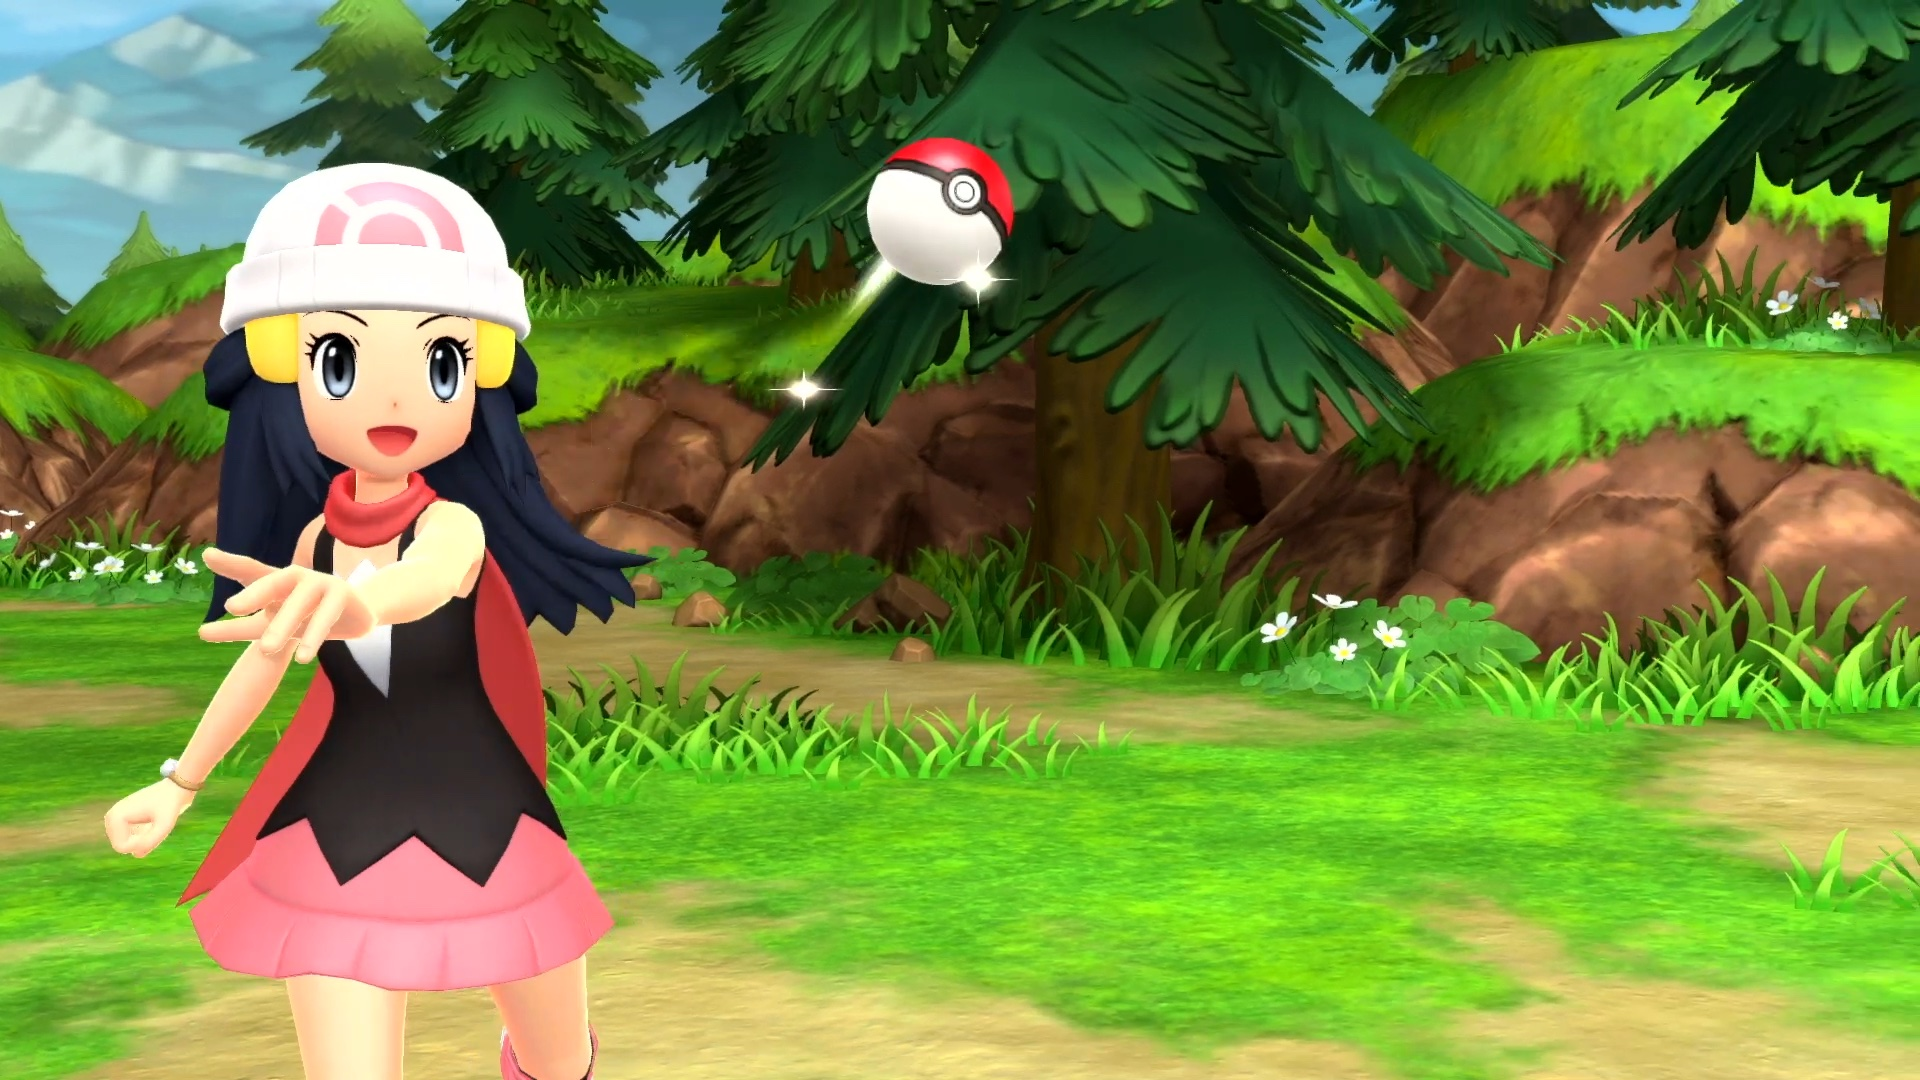 A trainer throws a Pokeball in a screenshot from Pokémon Brilliant Diamond and Pokémon Shining Pearl